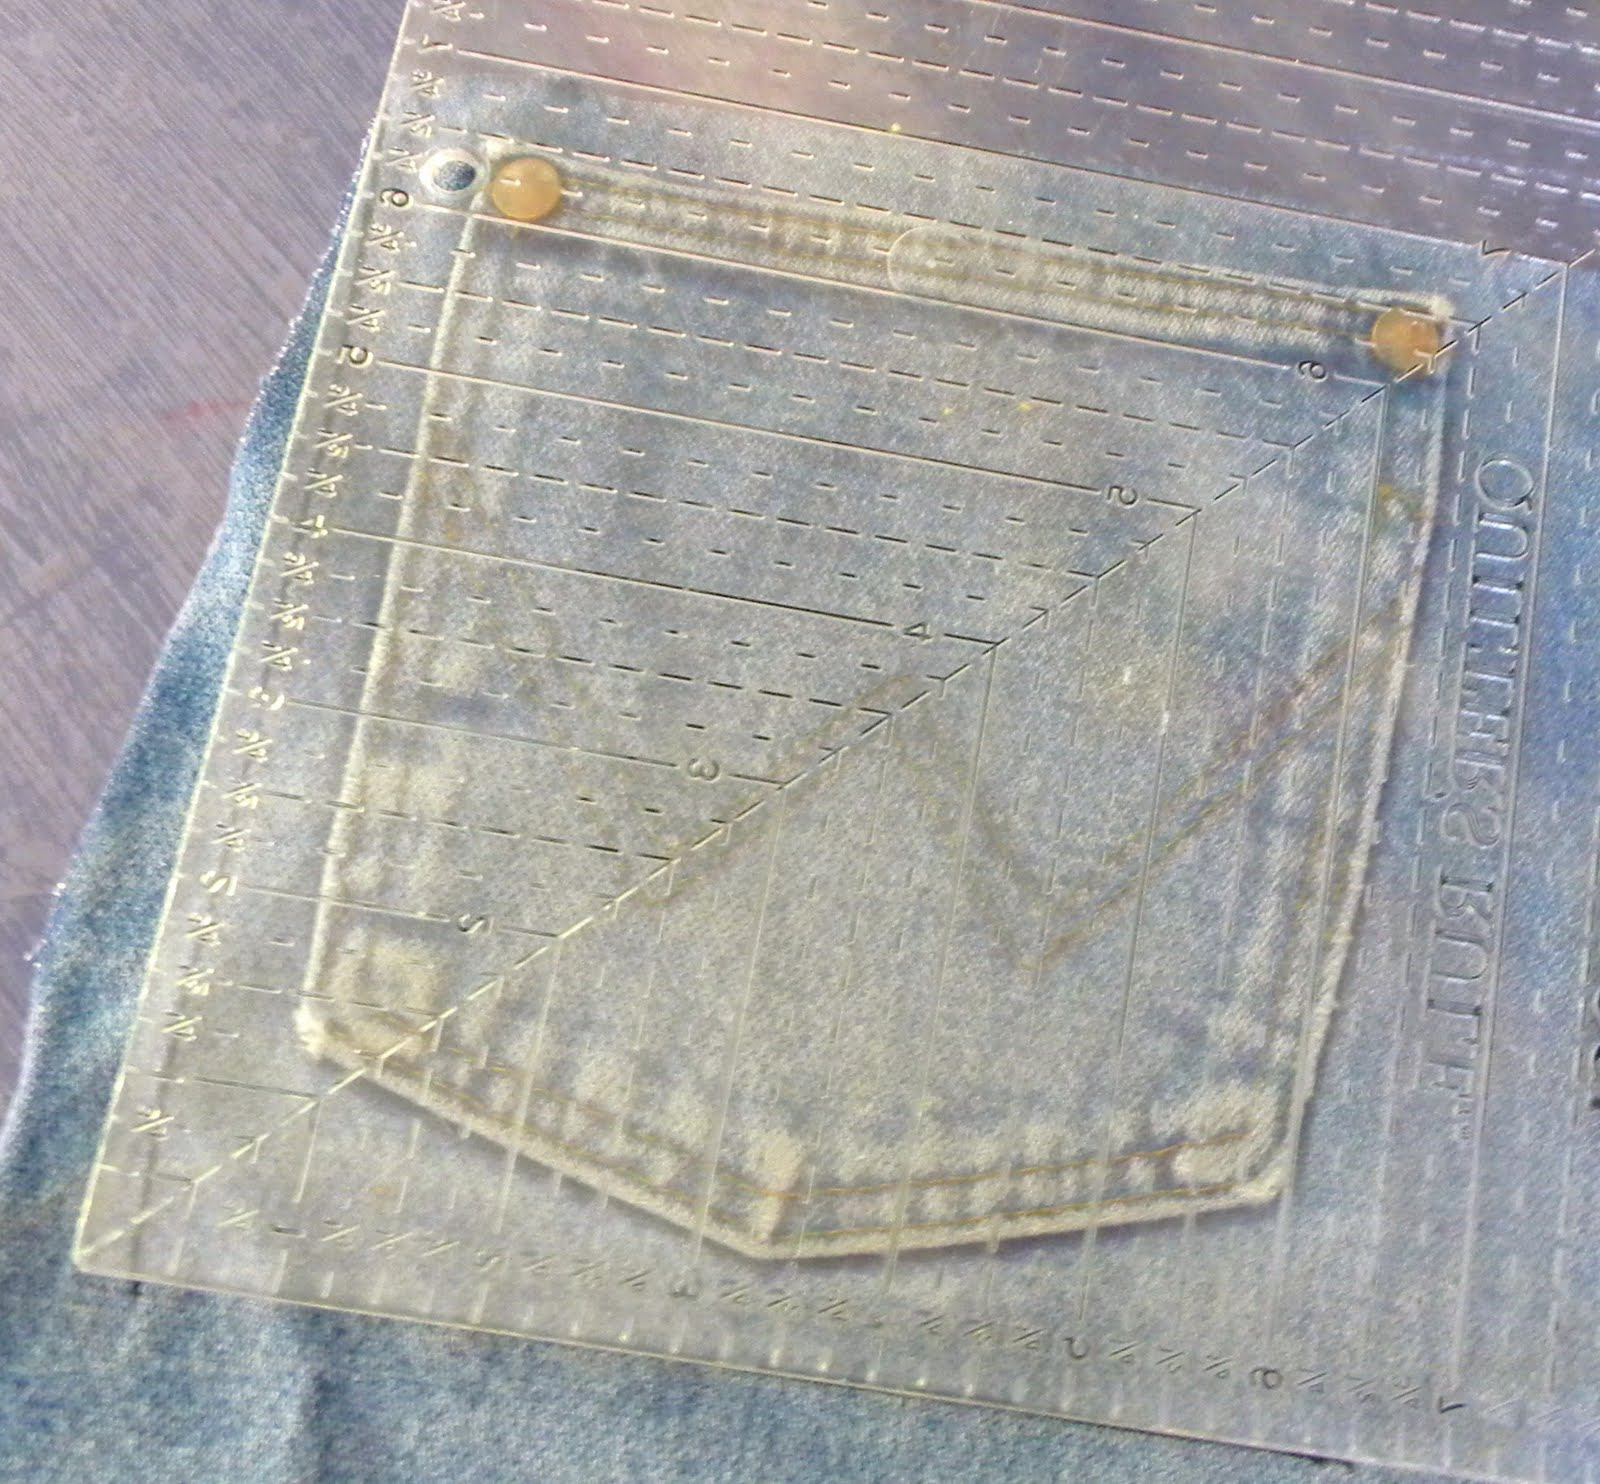 Simply soares jean pocket pot holder tutorial step 1 using the straight edge draw around the pocket of the jeans i try to make the finished square a normal size i dont like thinking too hard solutioingenieria Image collections